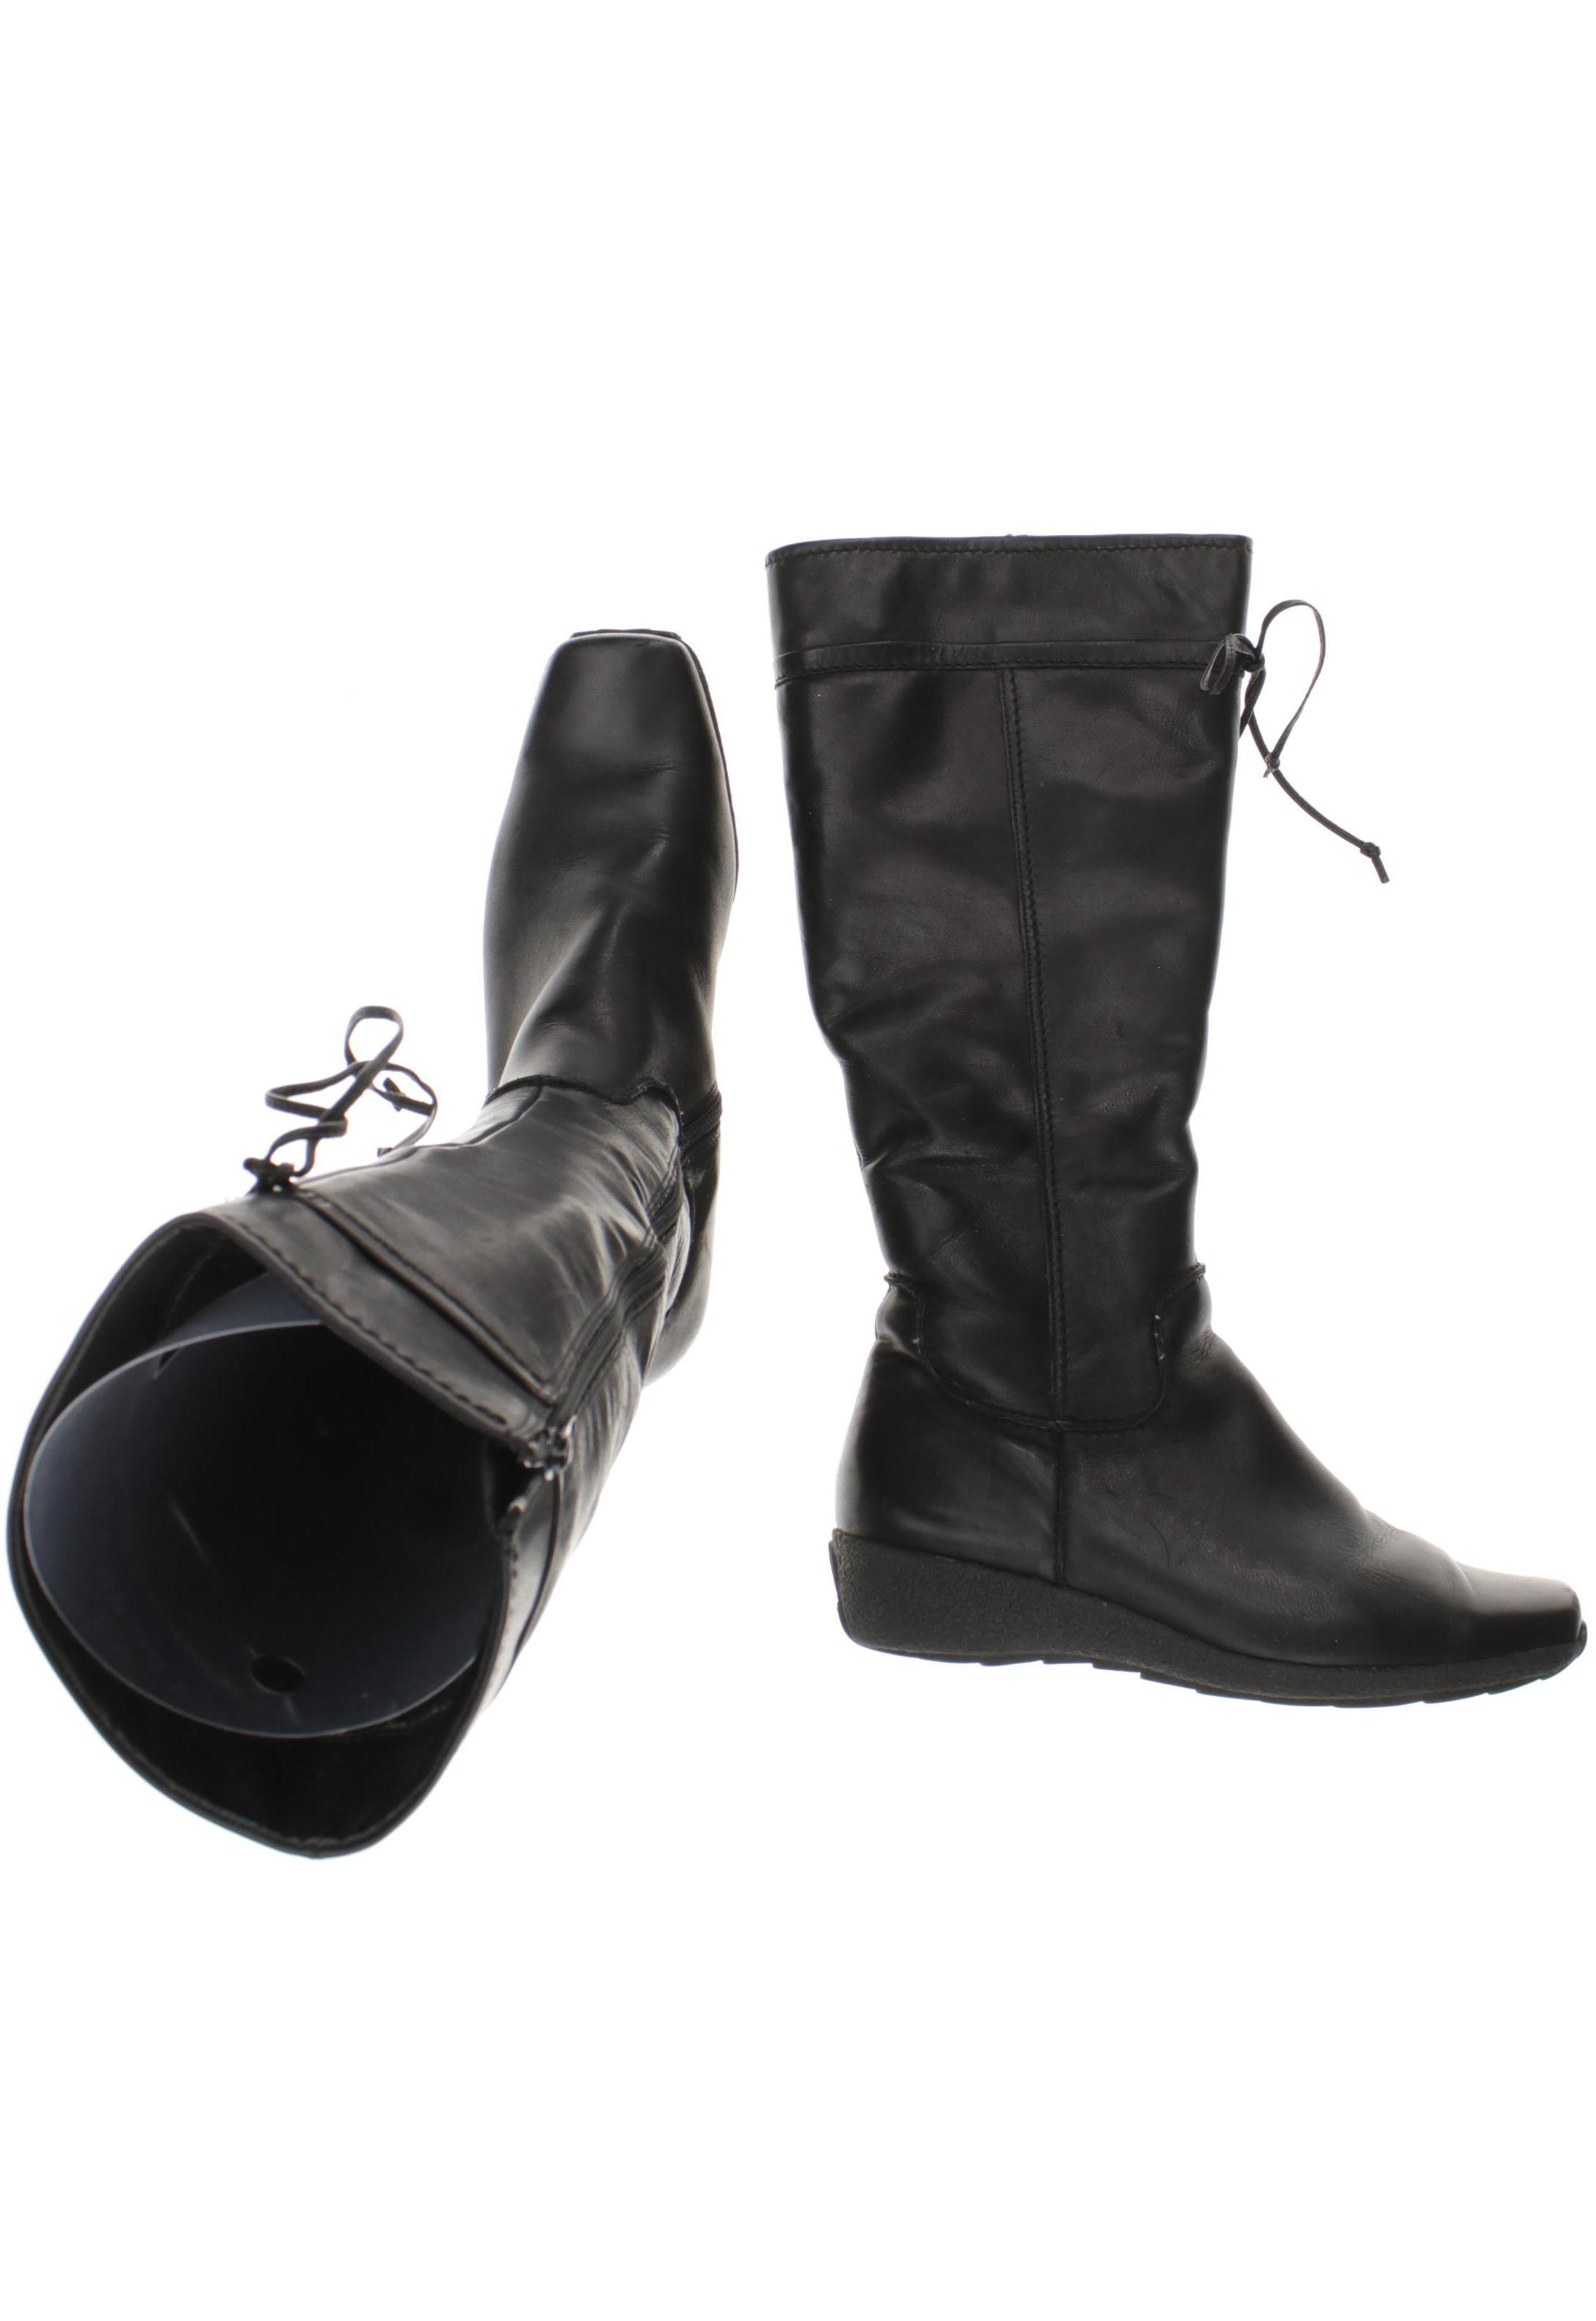 UK Stiefel Damen Högl Second 5 kaufen Hand 97282xtlt6217